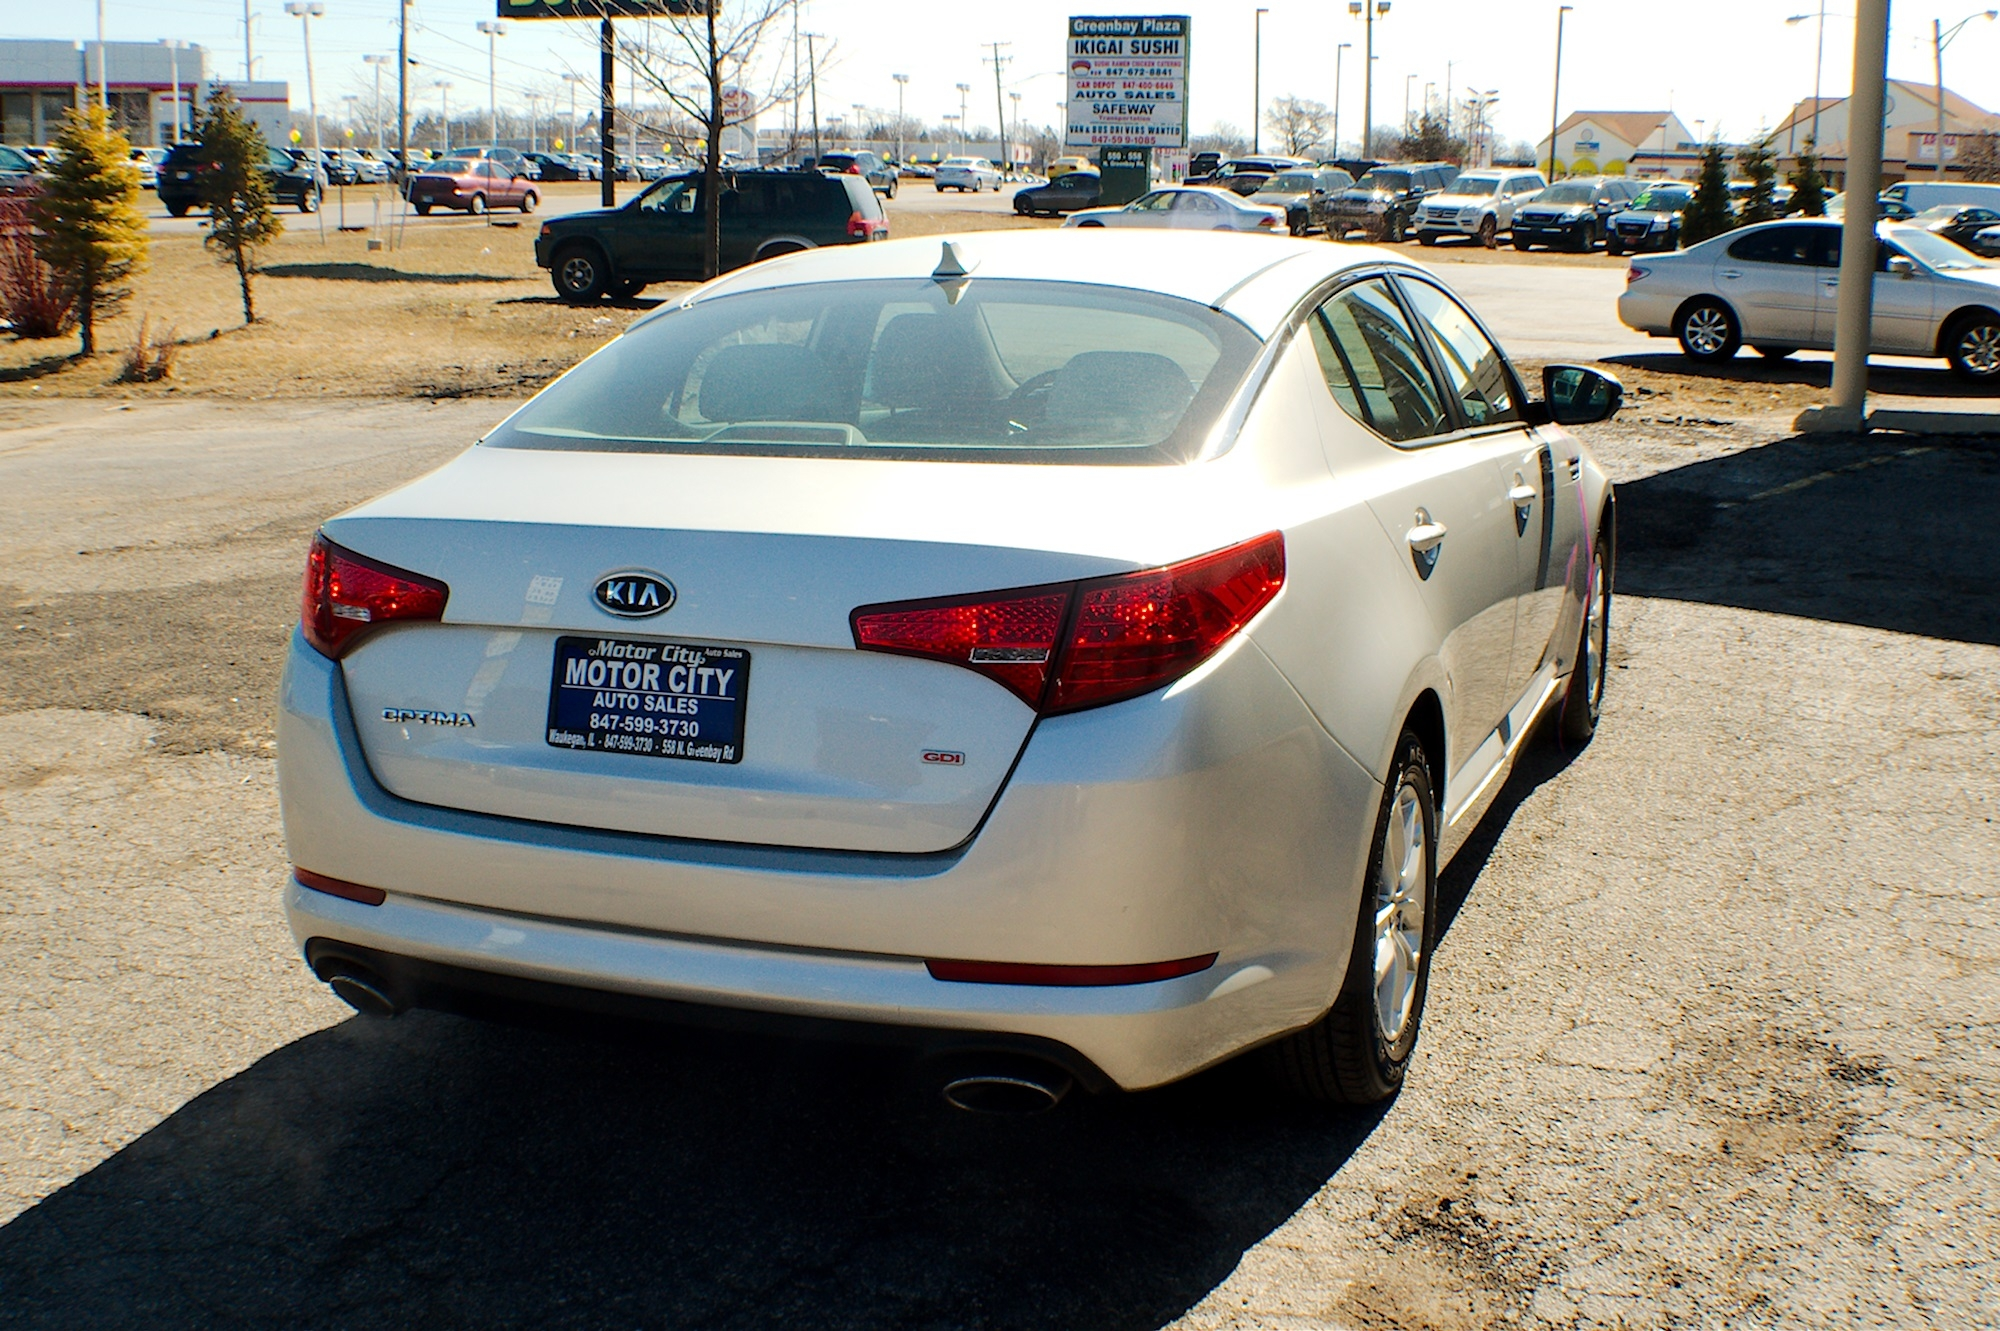 2011 Kia Optima GDI Silver Sedan Used Car Sale Fox River Grove Grayslake Volo Waucanda